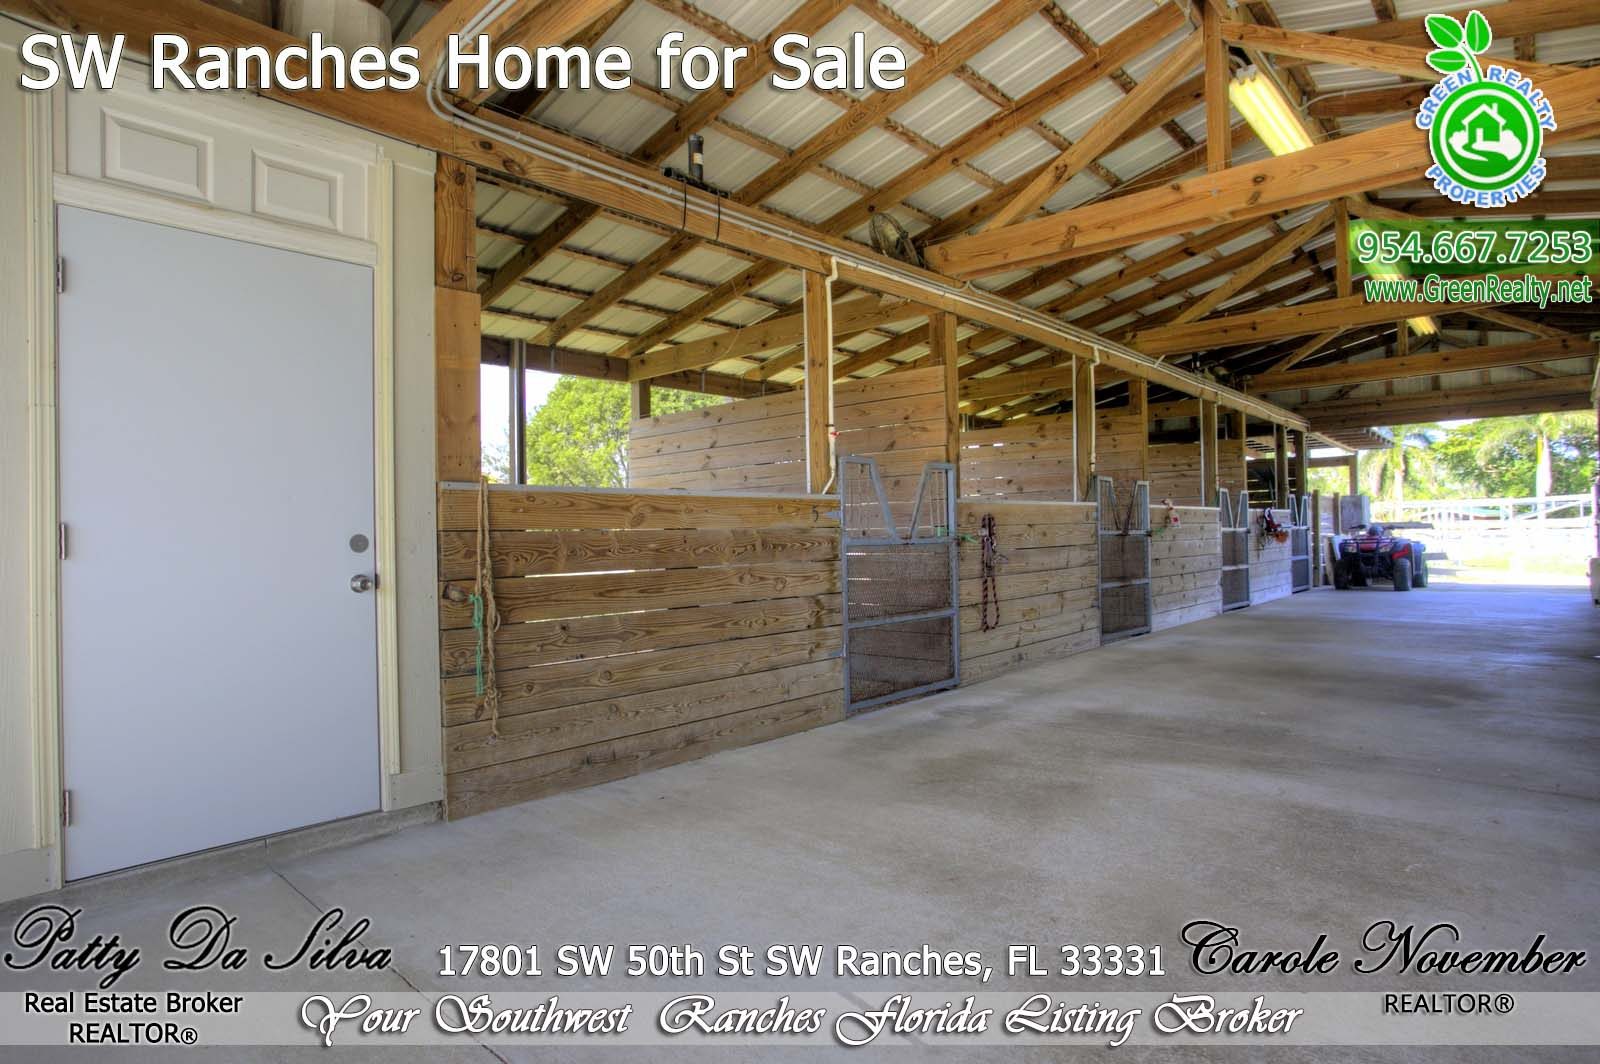 43 Equestrian Southwest Ranches Homes (2)